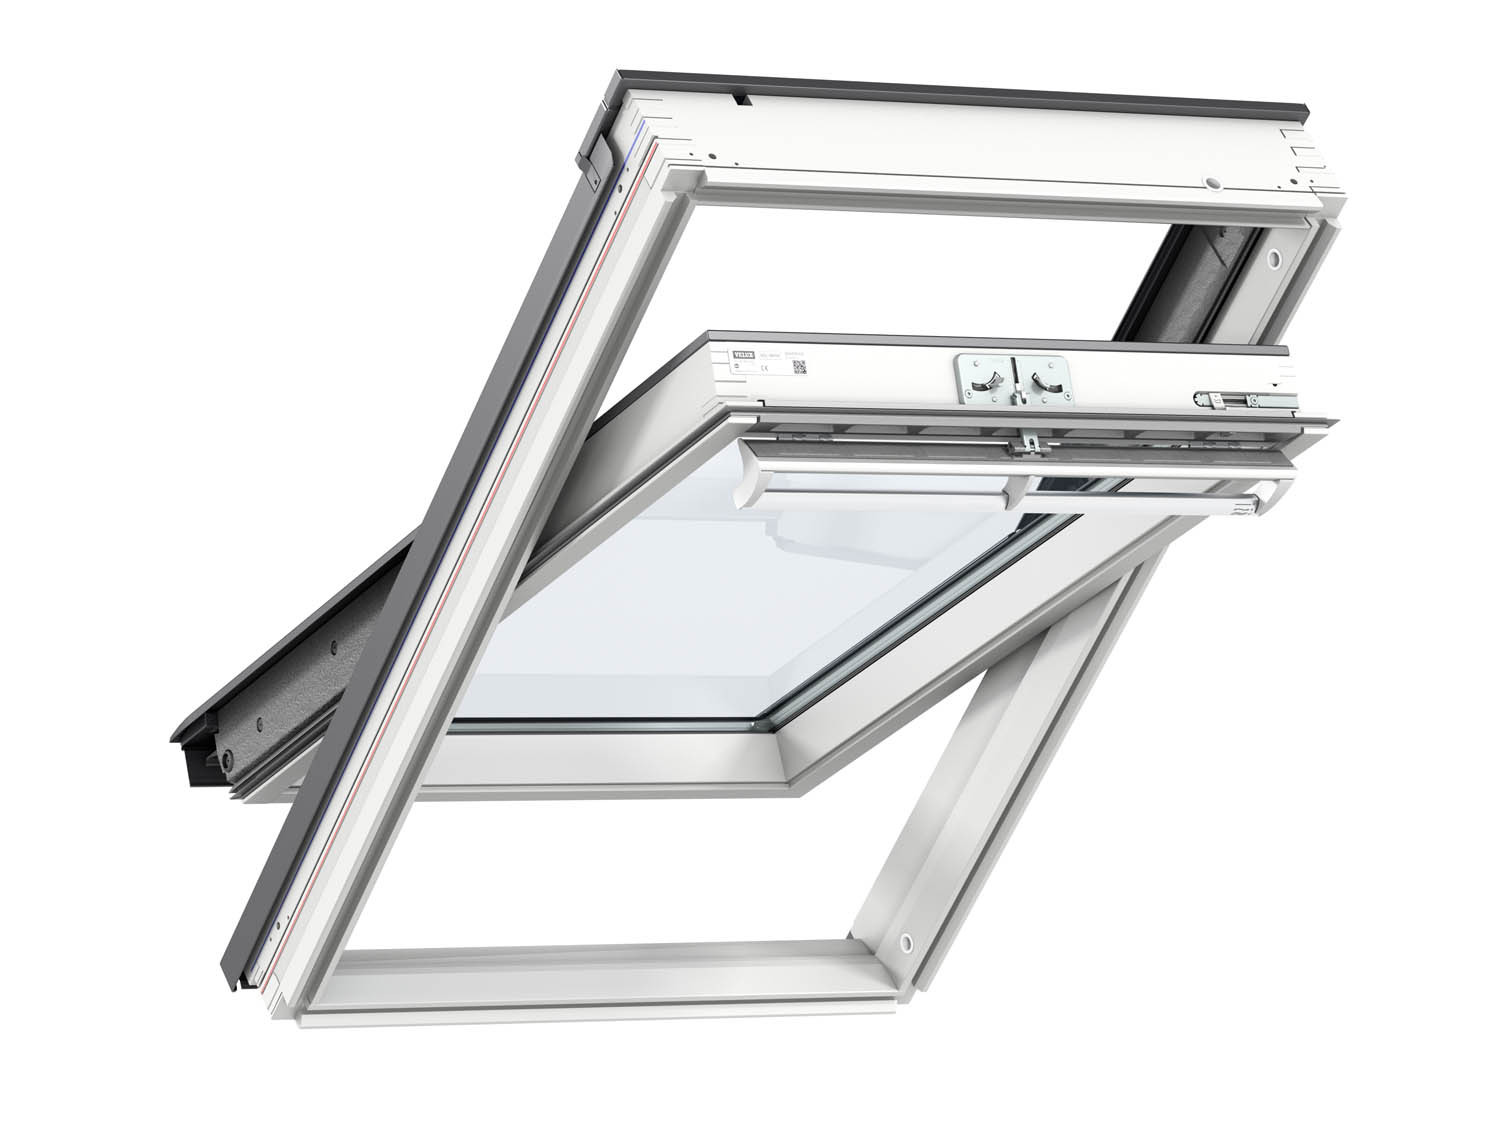 Velux 1.34m x 980mm White Roof Window GGL2070 UK04